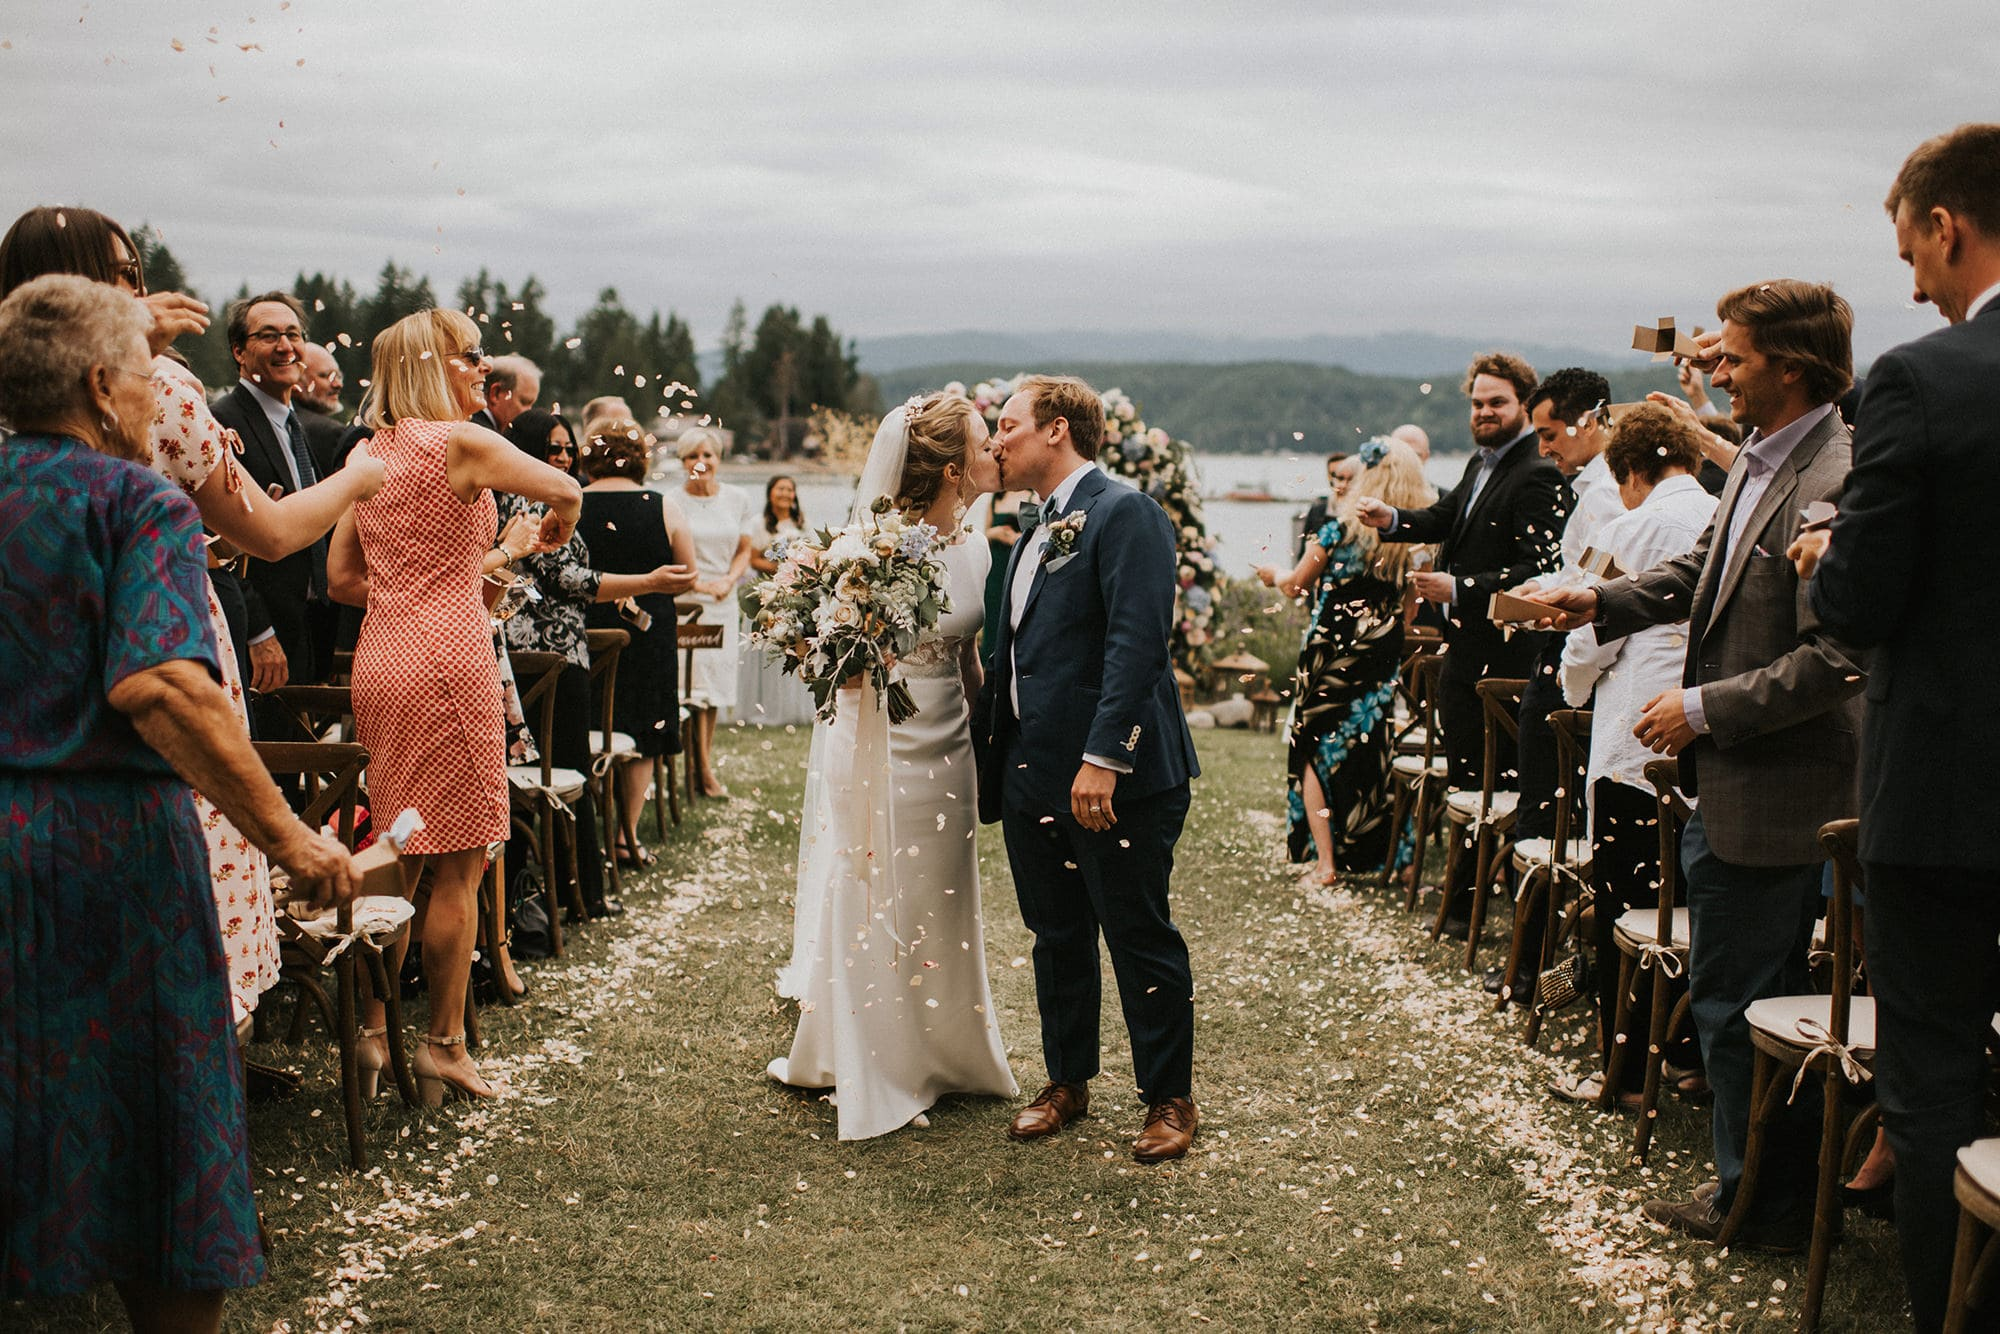 Best Seattle Weddings Venues Alderbrook resort and spa